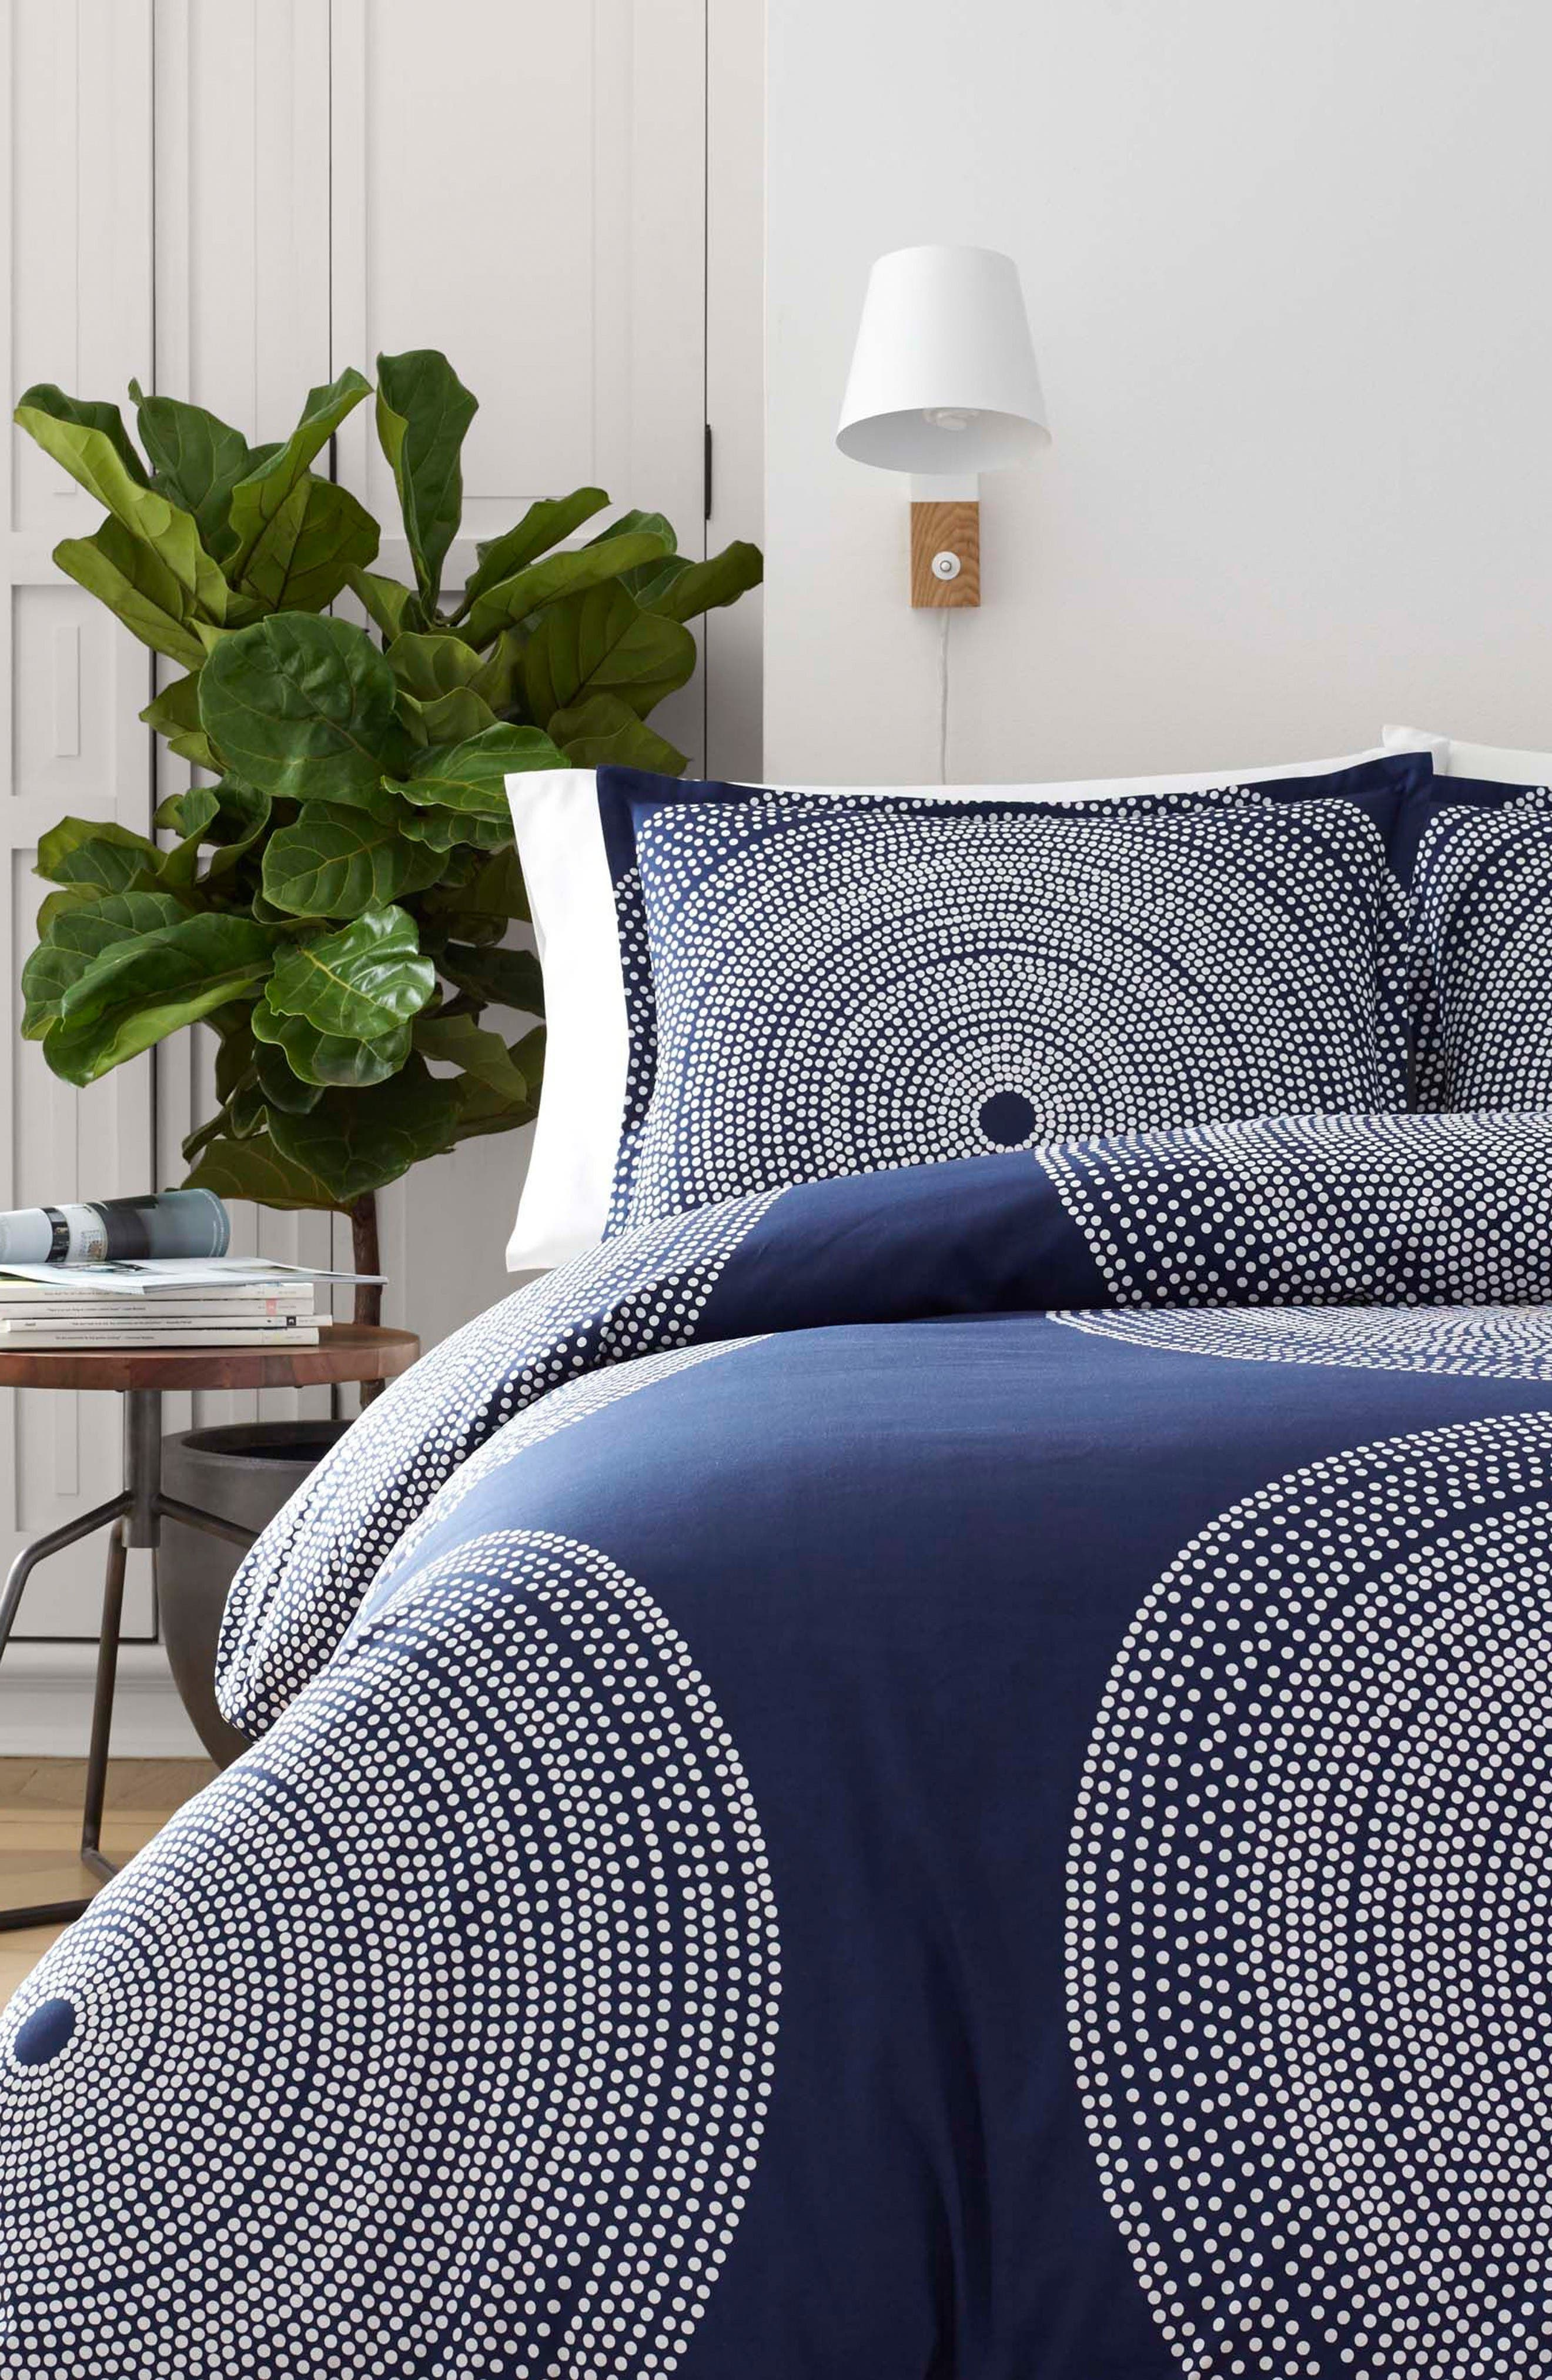 home nordstrom peri c bed bedding